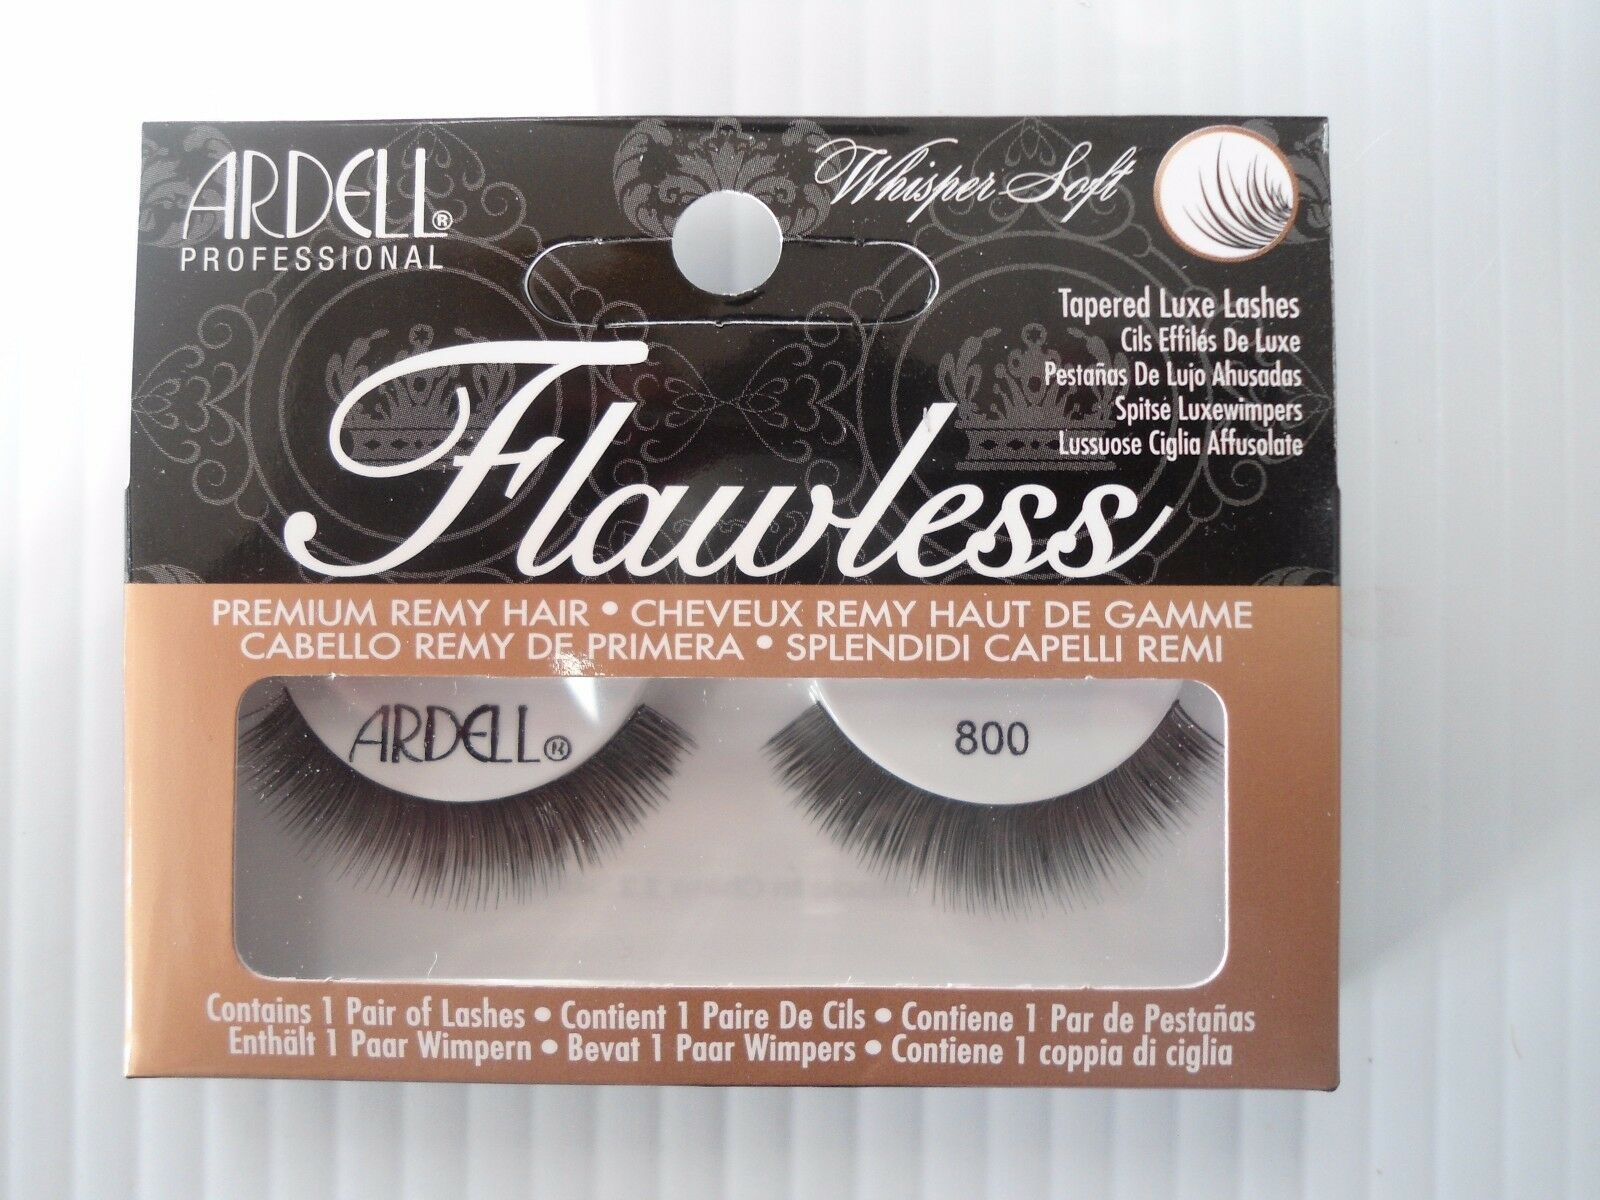 Primary image for Ardell Striplashes Flawless Style 800 Black Tapered Luxe Lashes (Pack of 4)